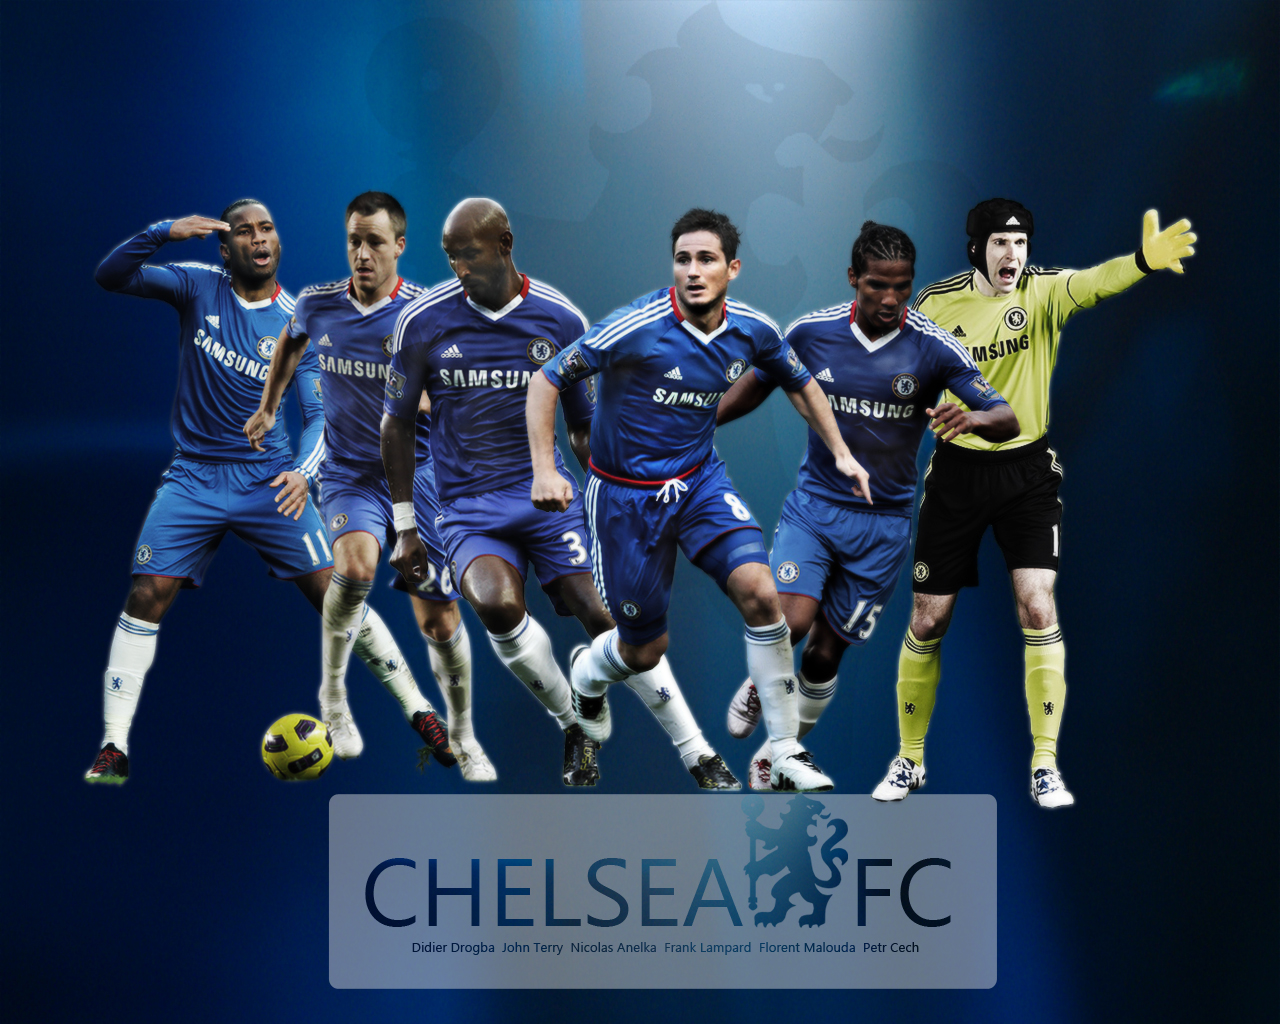 Free Wa11papers Wallpaper Chelsea Fc 2012 Free Wa11papers Wallpaper Chelsea Fc 2012